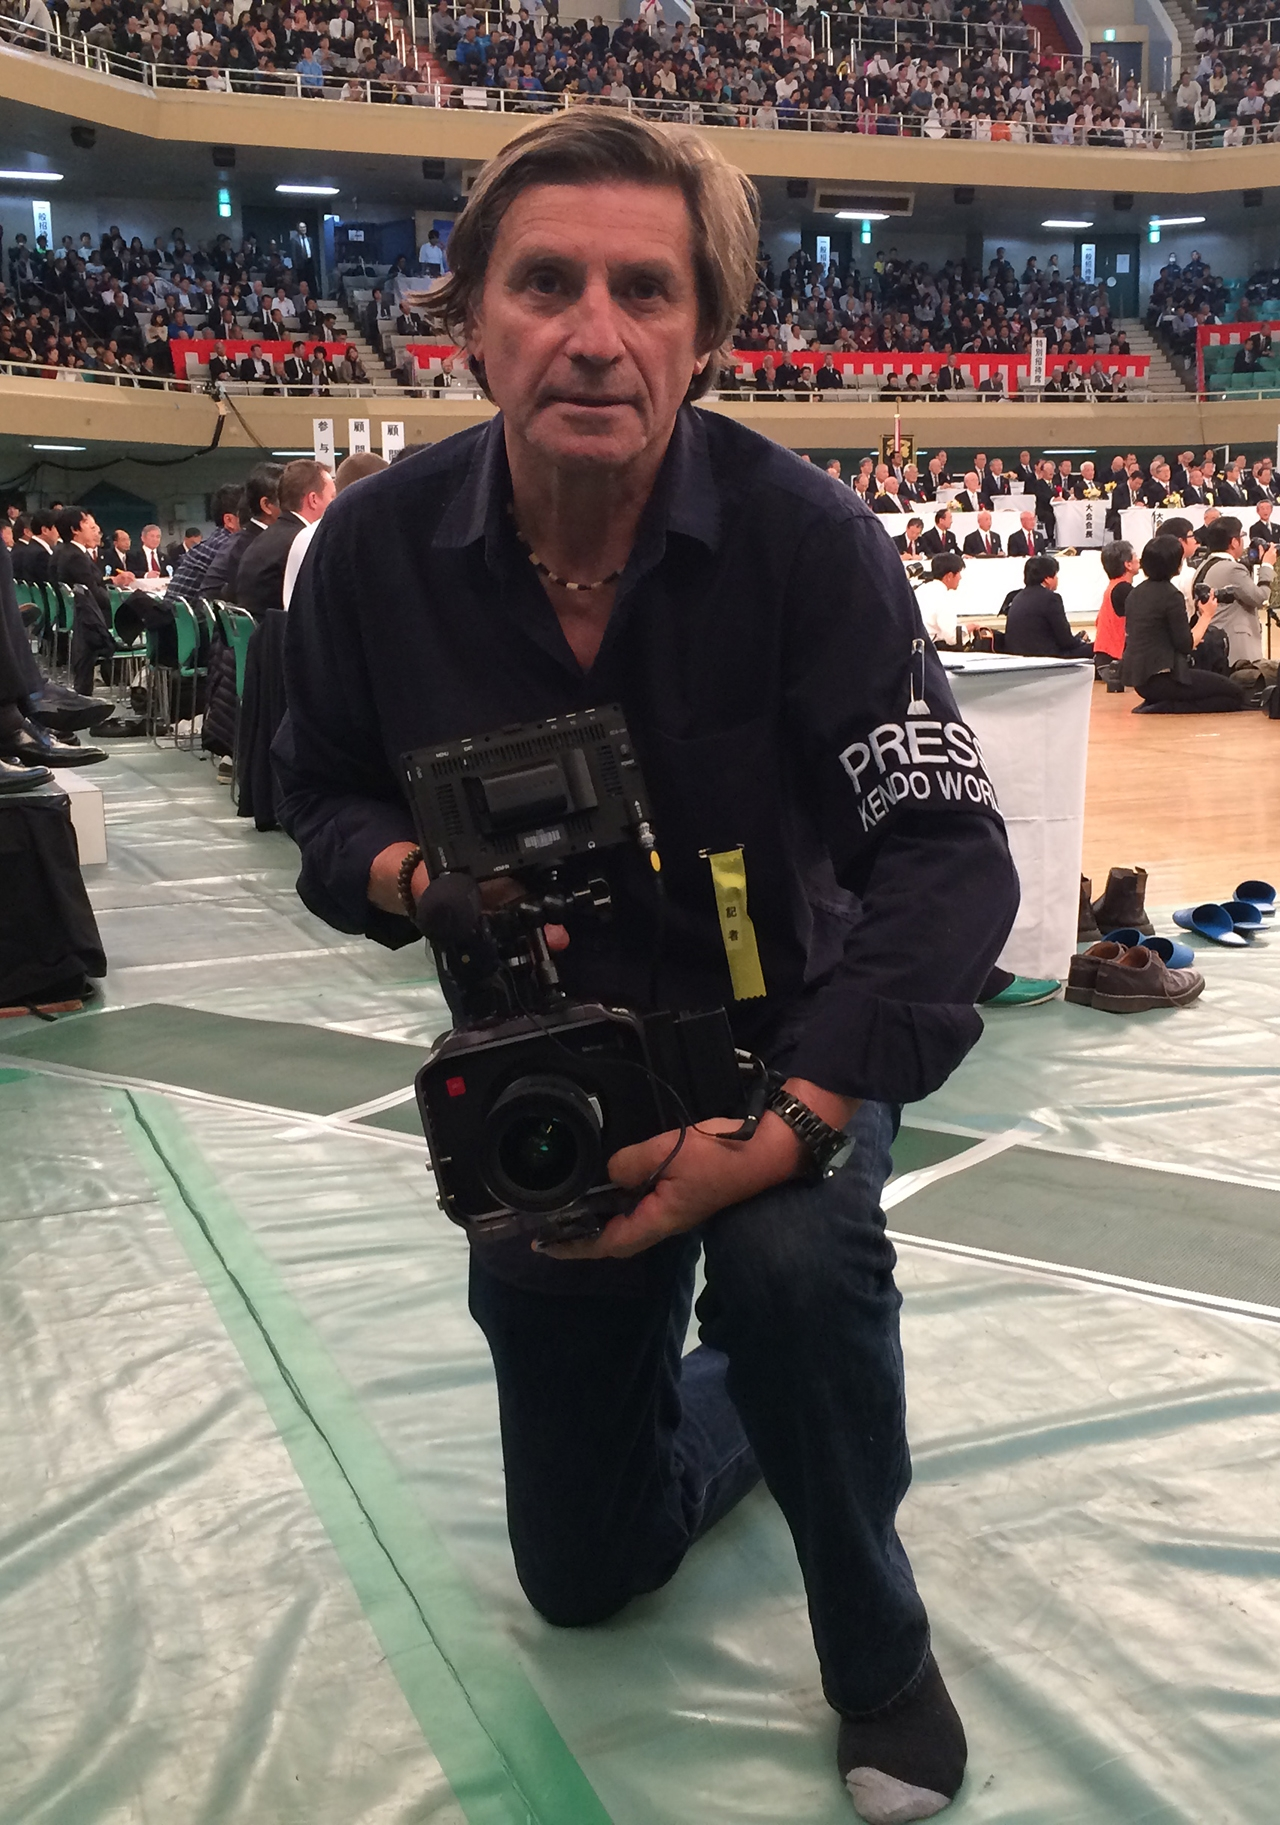 Jon Braeley filming at the Japan Kendo Championships 2013